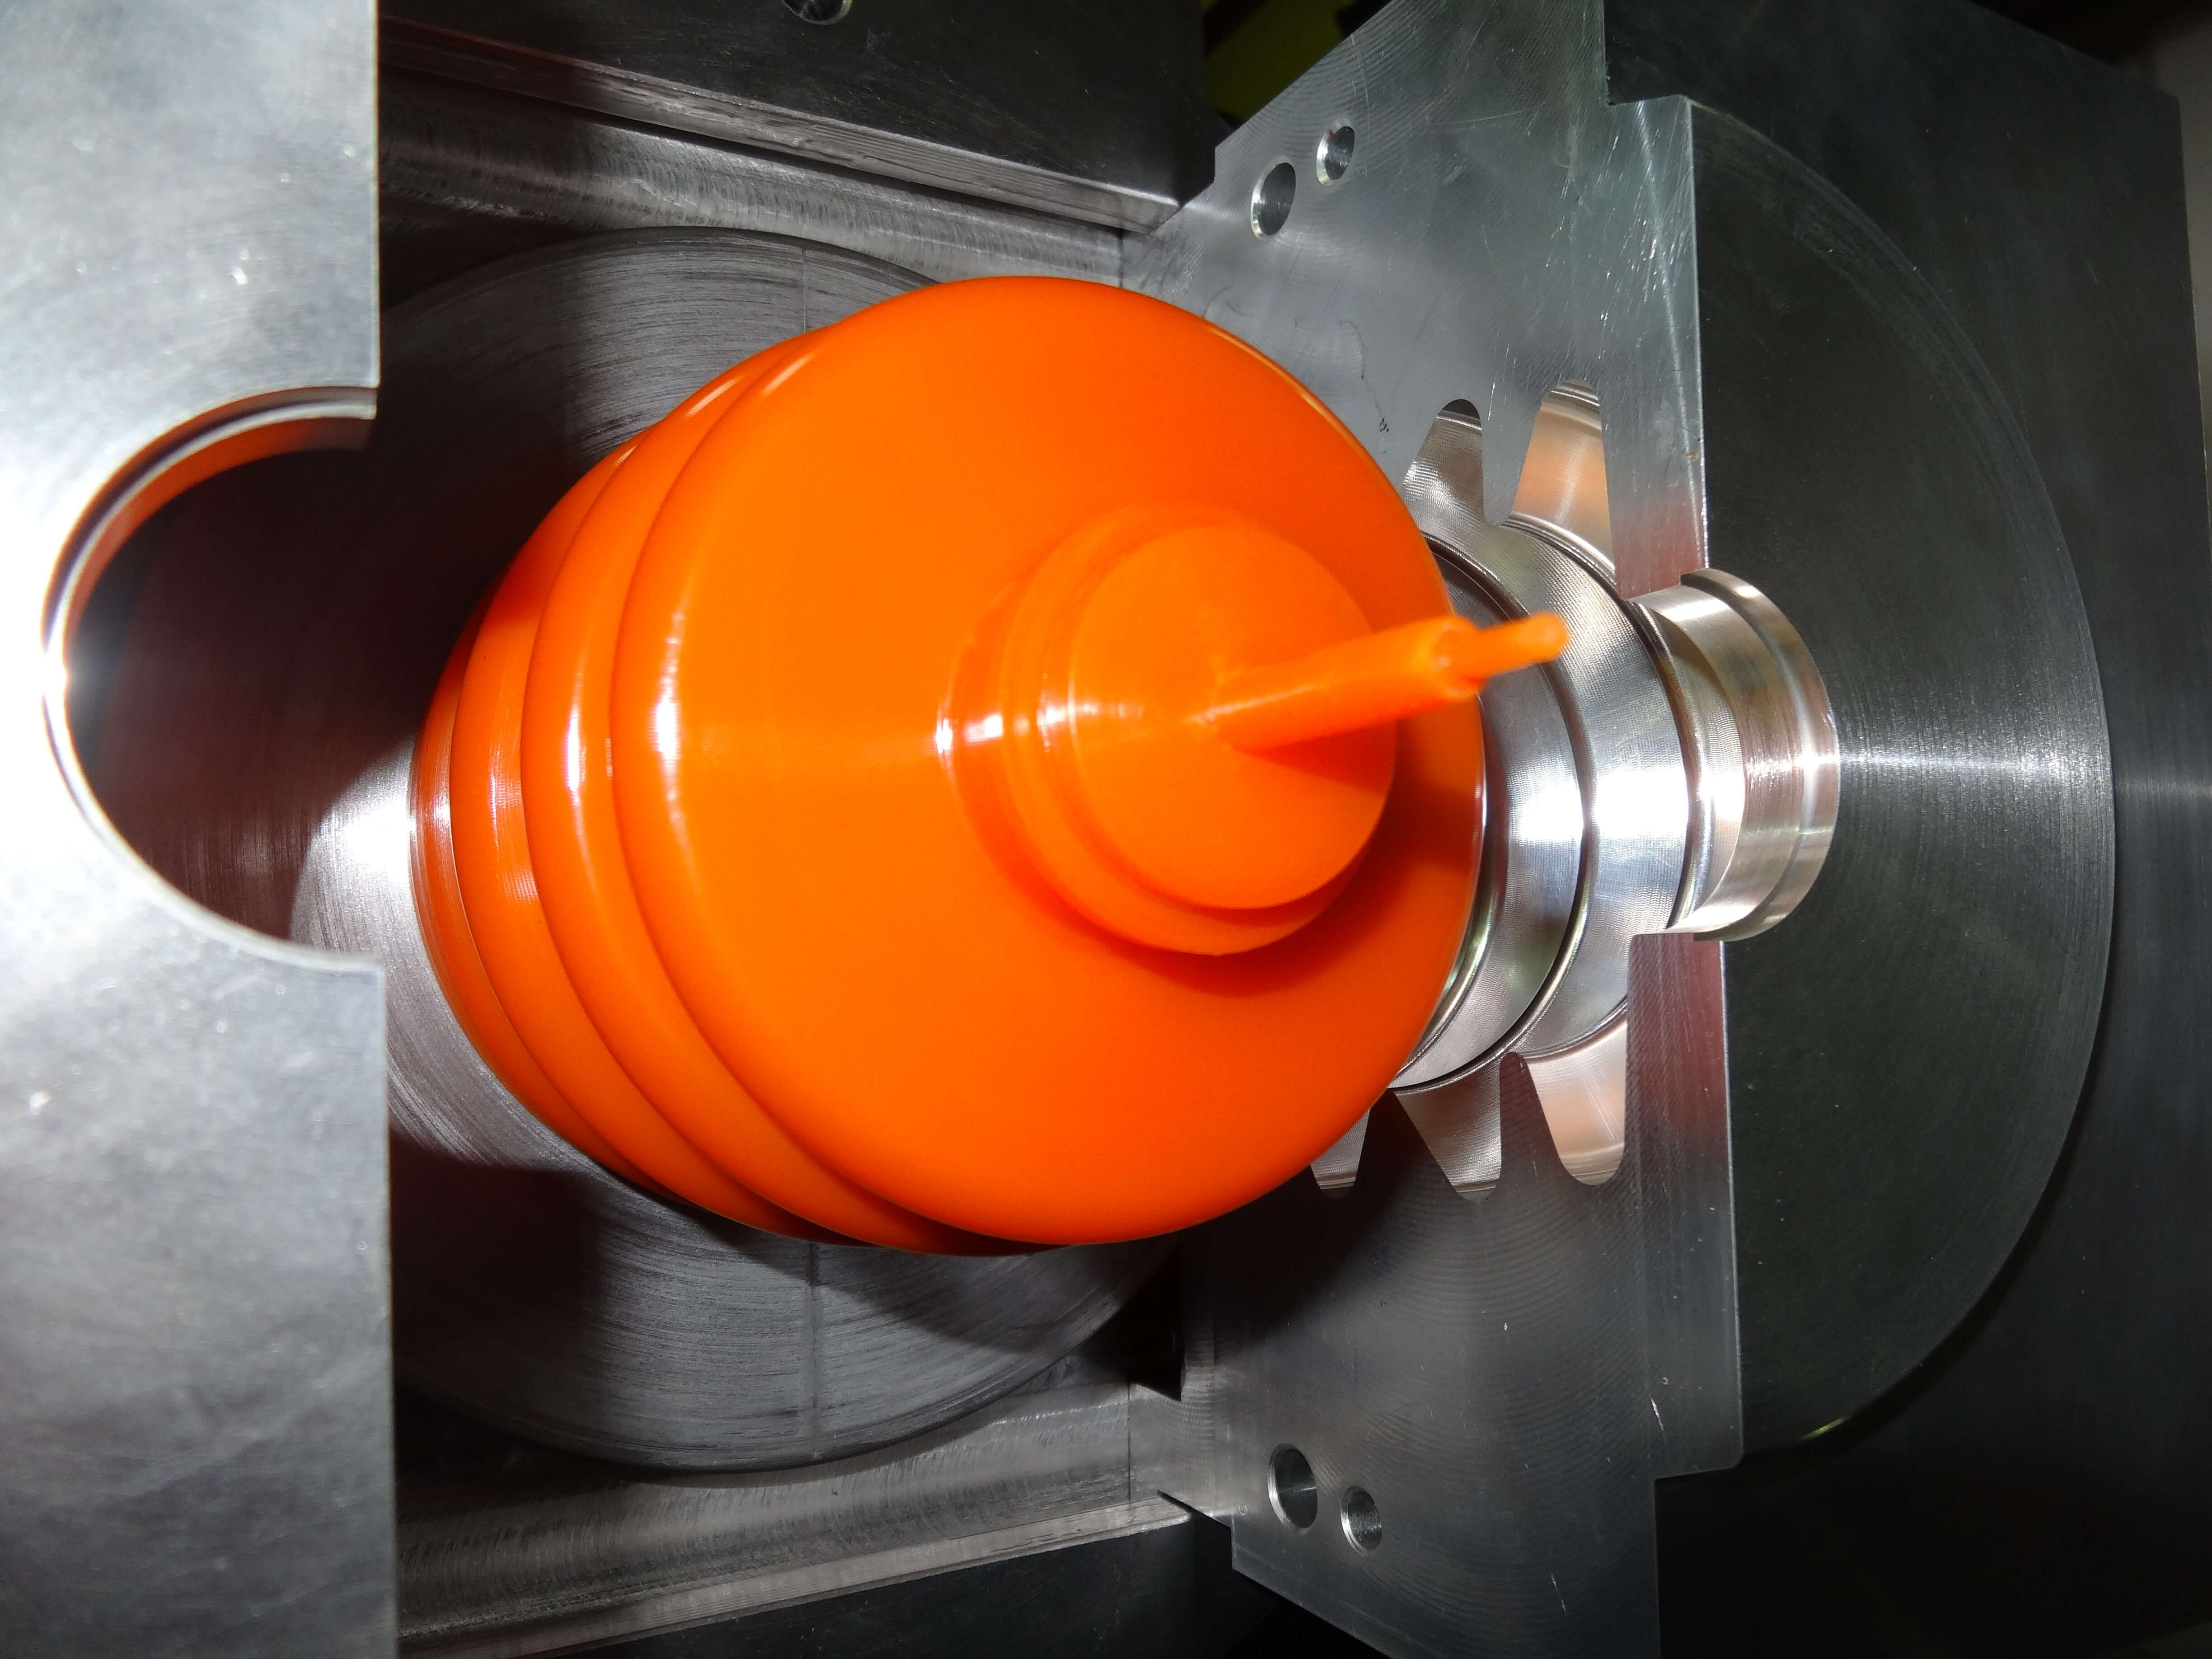 Image of product being manufactured